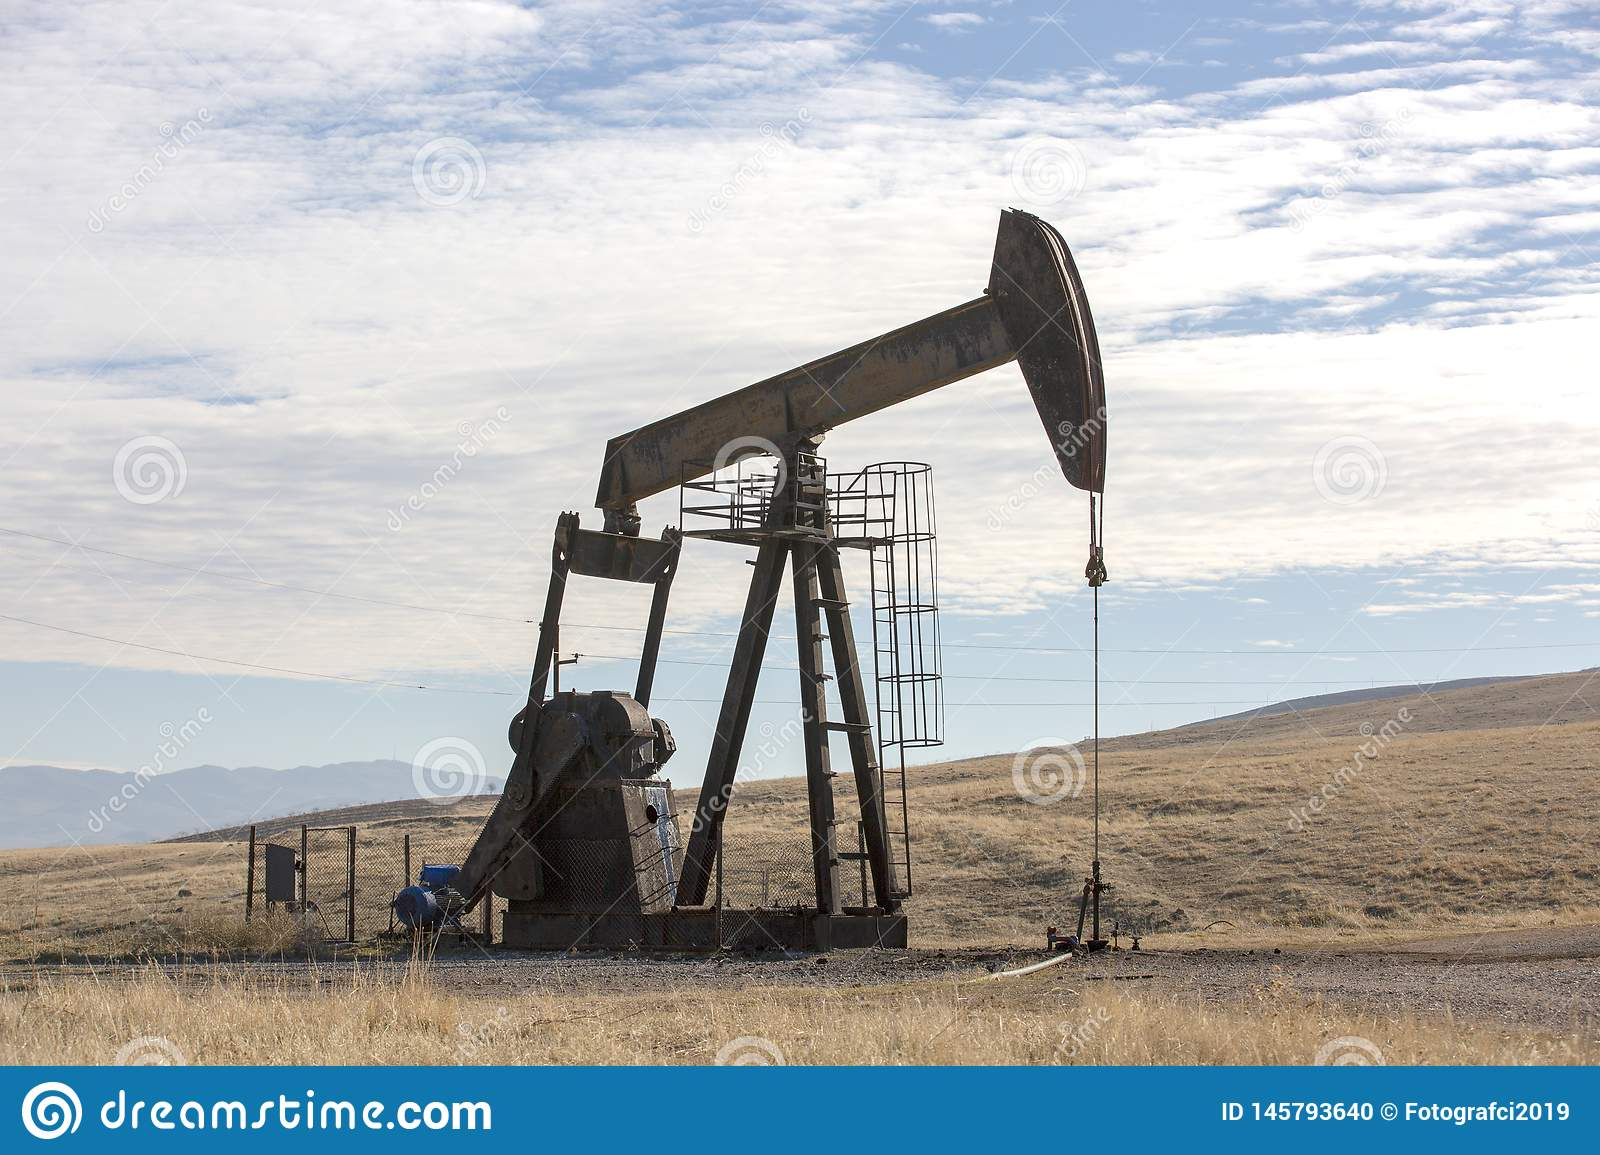 View of Pumpjack at Daylight Oil Industry